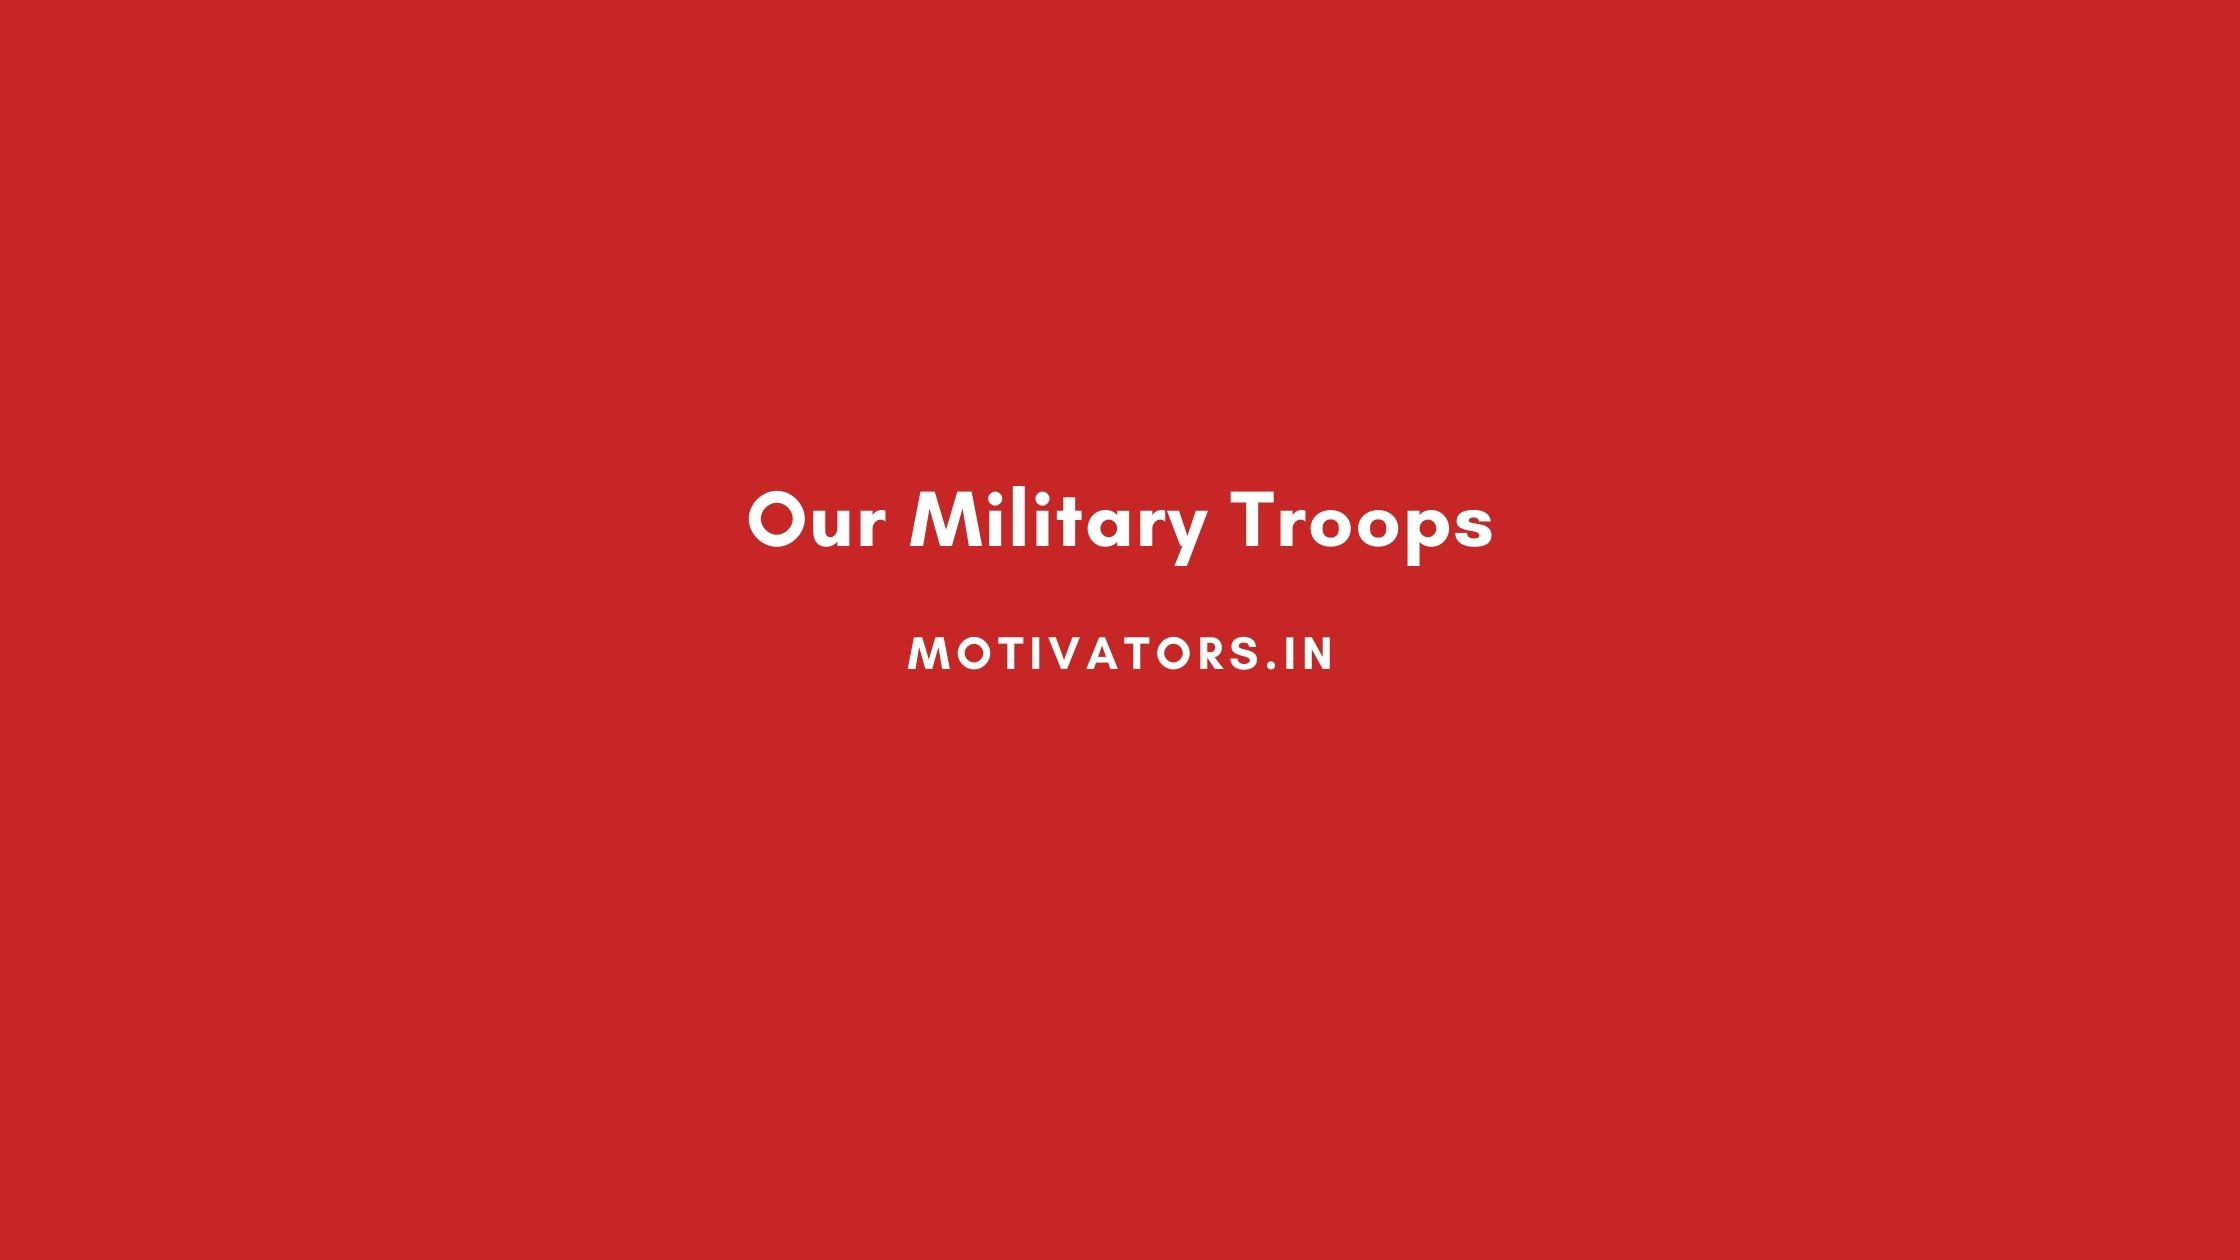 Our Military Troops